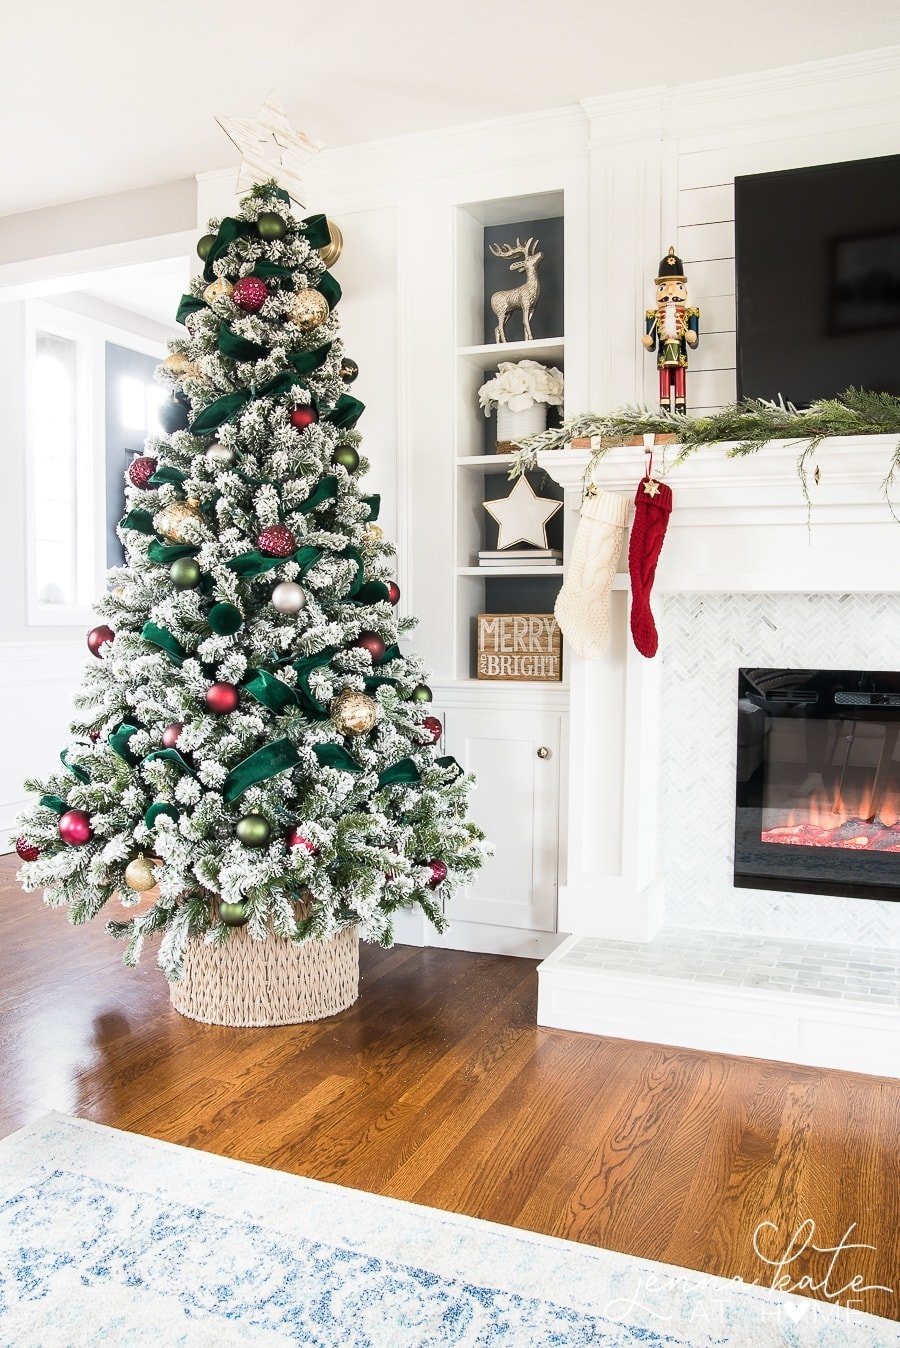 Easy and Elegant Christmas Decor - Jenna Kate at Home